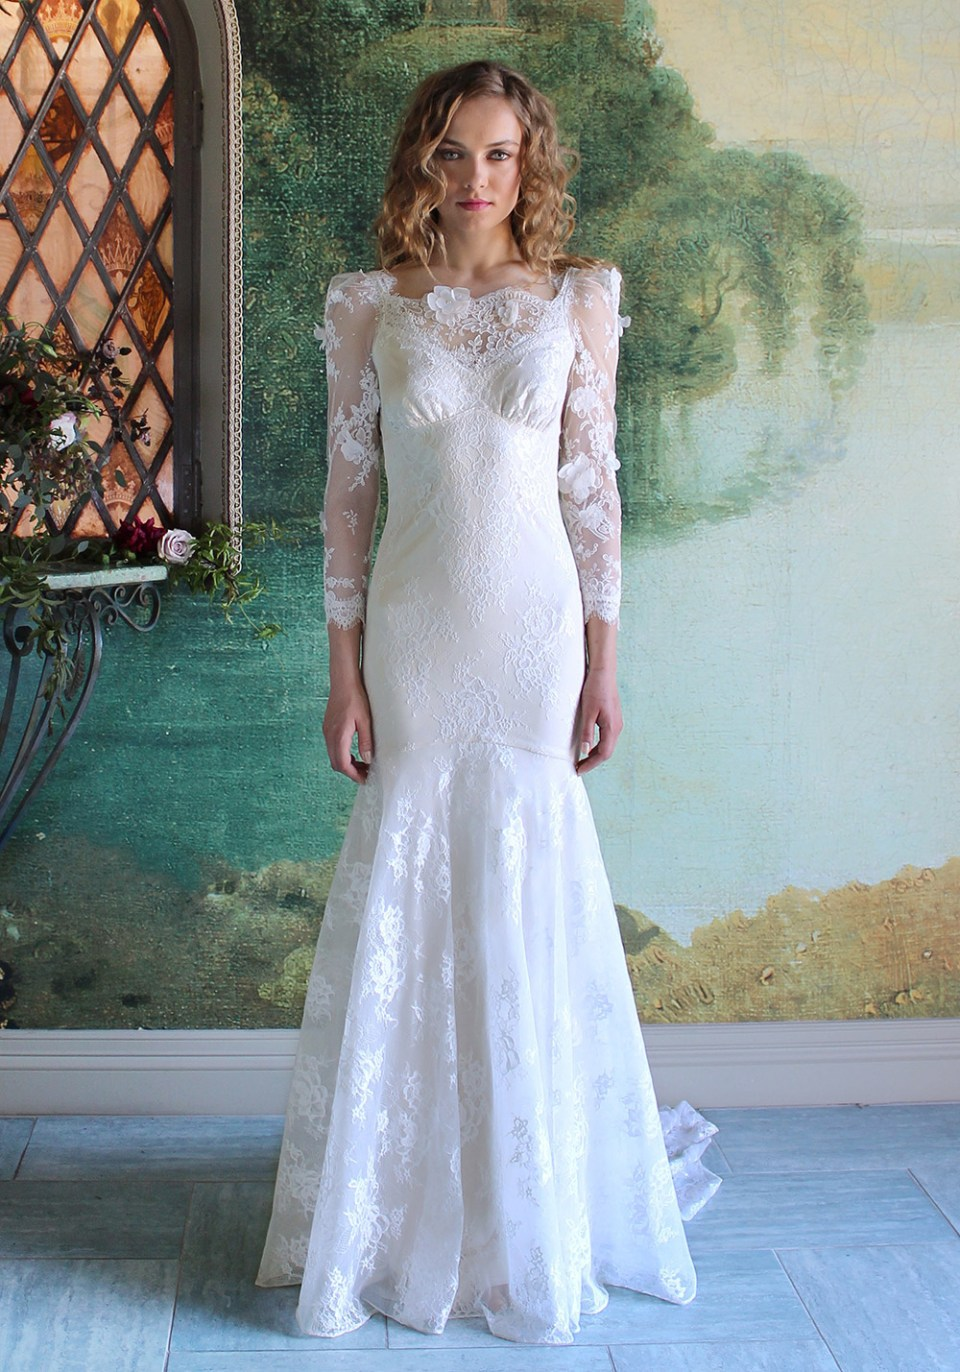 Maybelle - Romantique 2016 Collection. www.theweddingnotebook.com